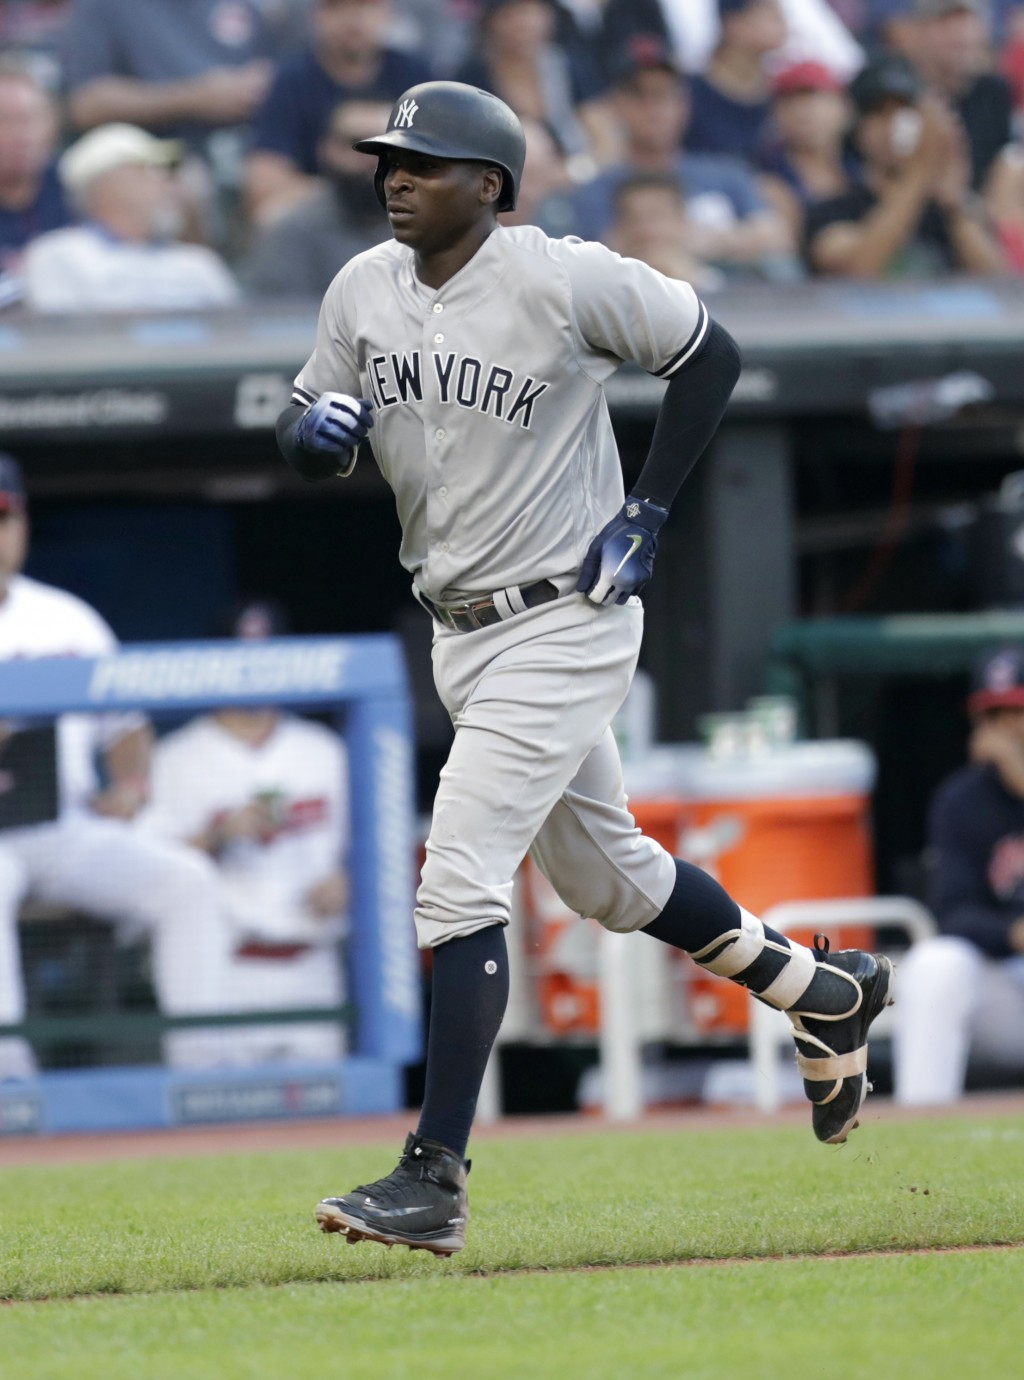 New York Yankees' Didi Gregorius runs the bases after hitting a solo home run off Cleveland Indians starting pitcher Corey Kluber during the fourth in